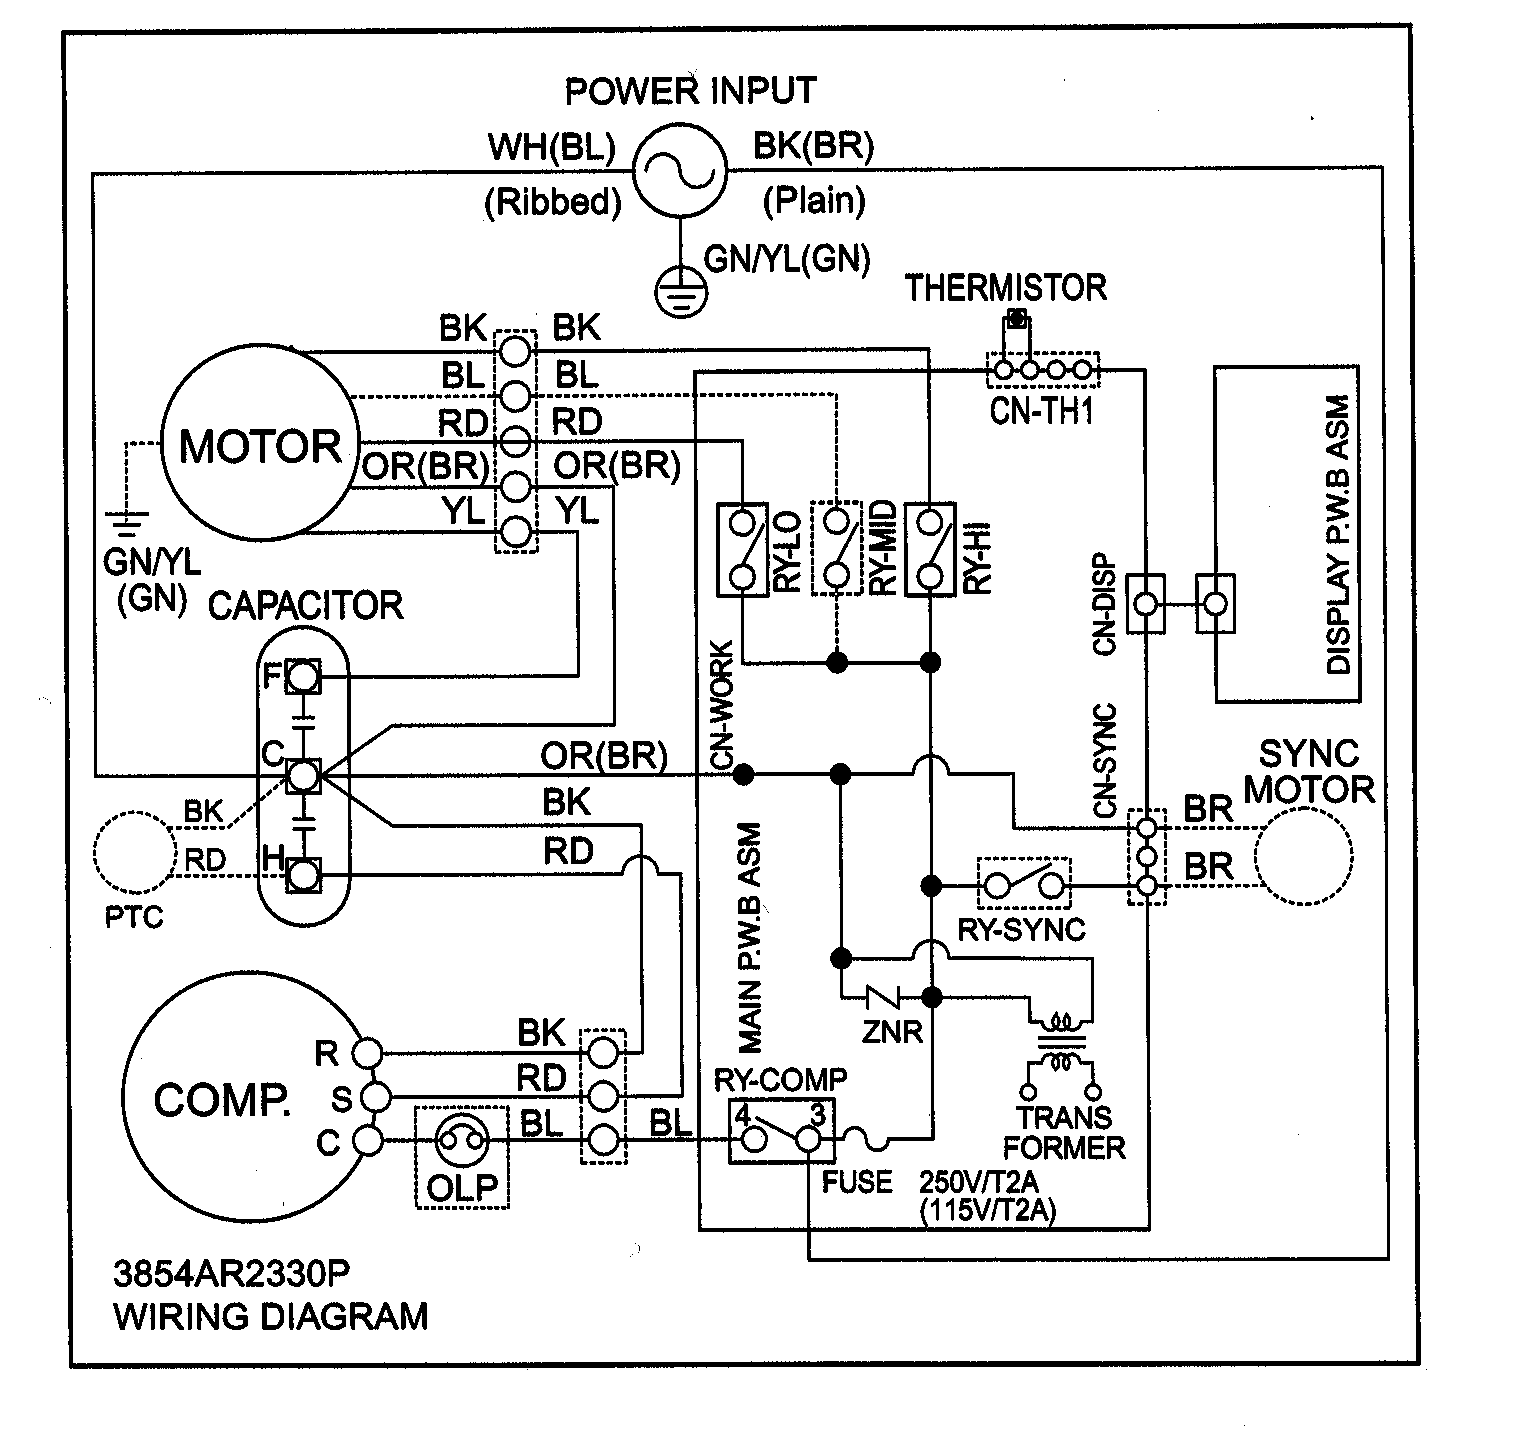 Marine Fuel Gauge Wiring Diagram in 2021 | Electrical circuit diagram, Ac  wiring, Circuit diagram | Window Unit Air Conditioner Wiring Diagram |  | Pinterest